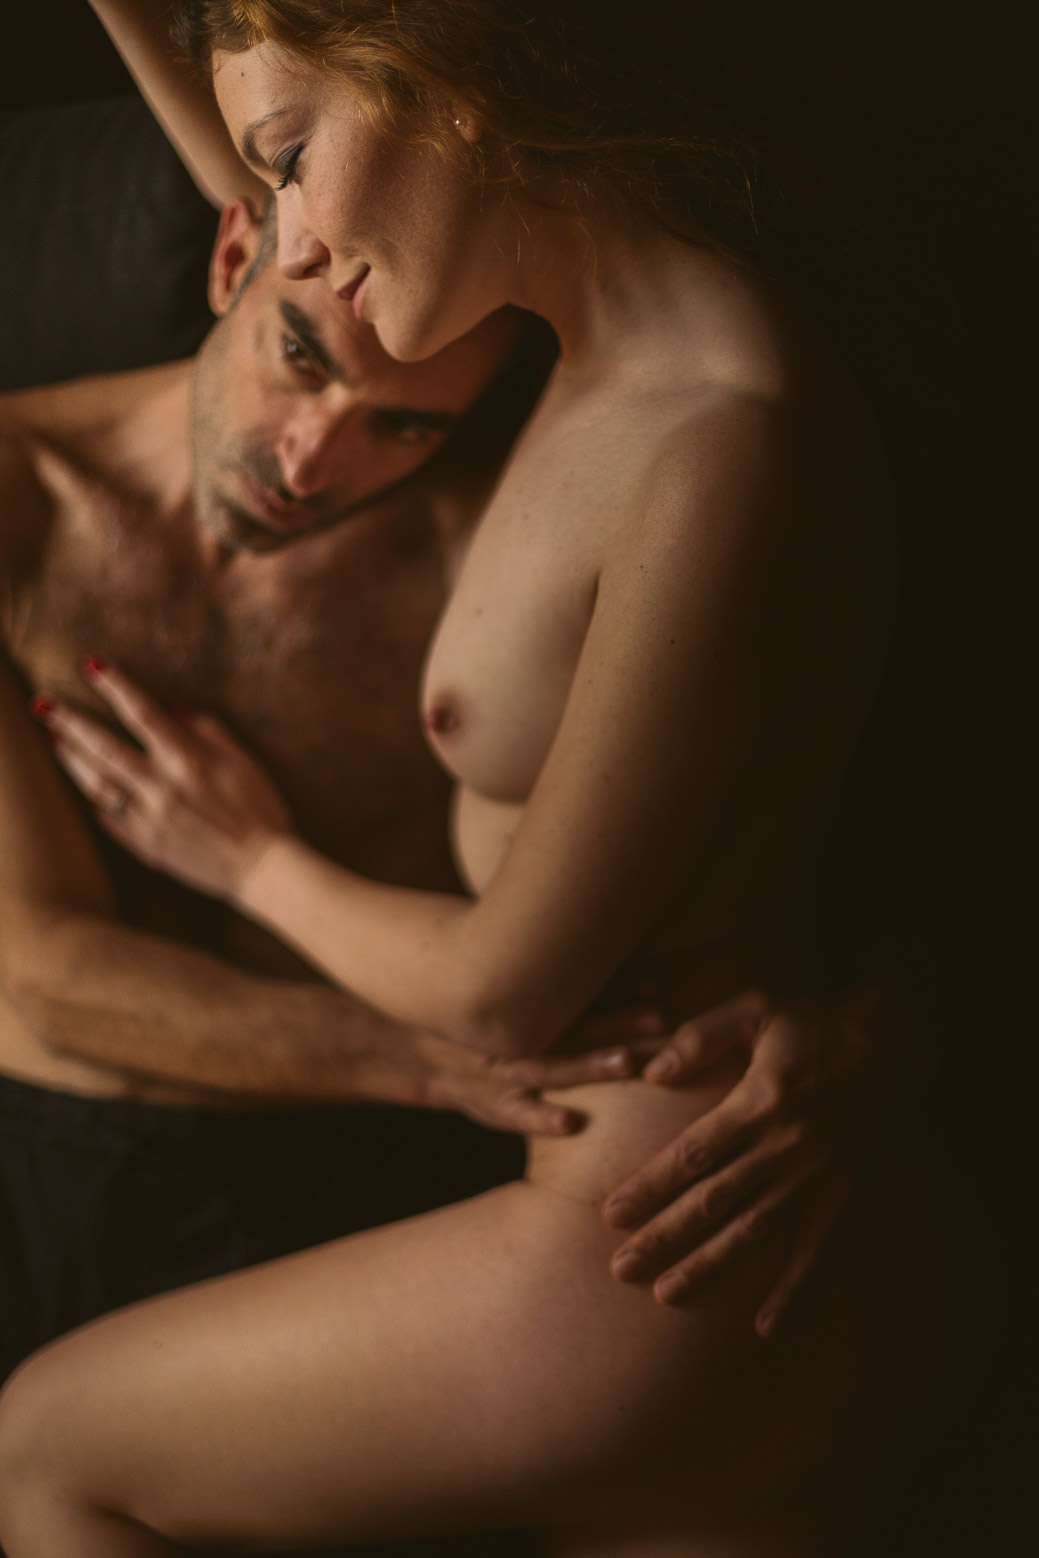 Séance photo intime en couple à Lyon joli couple